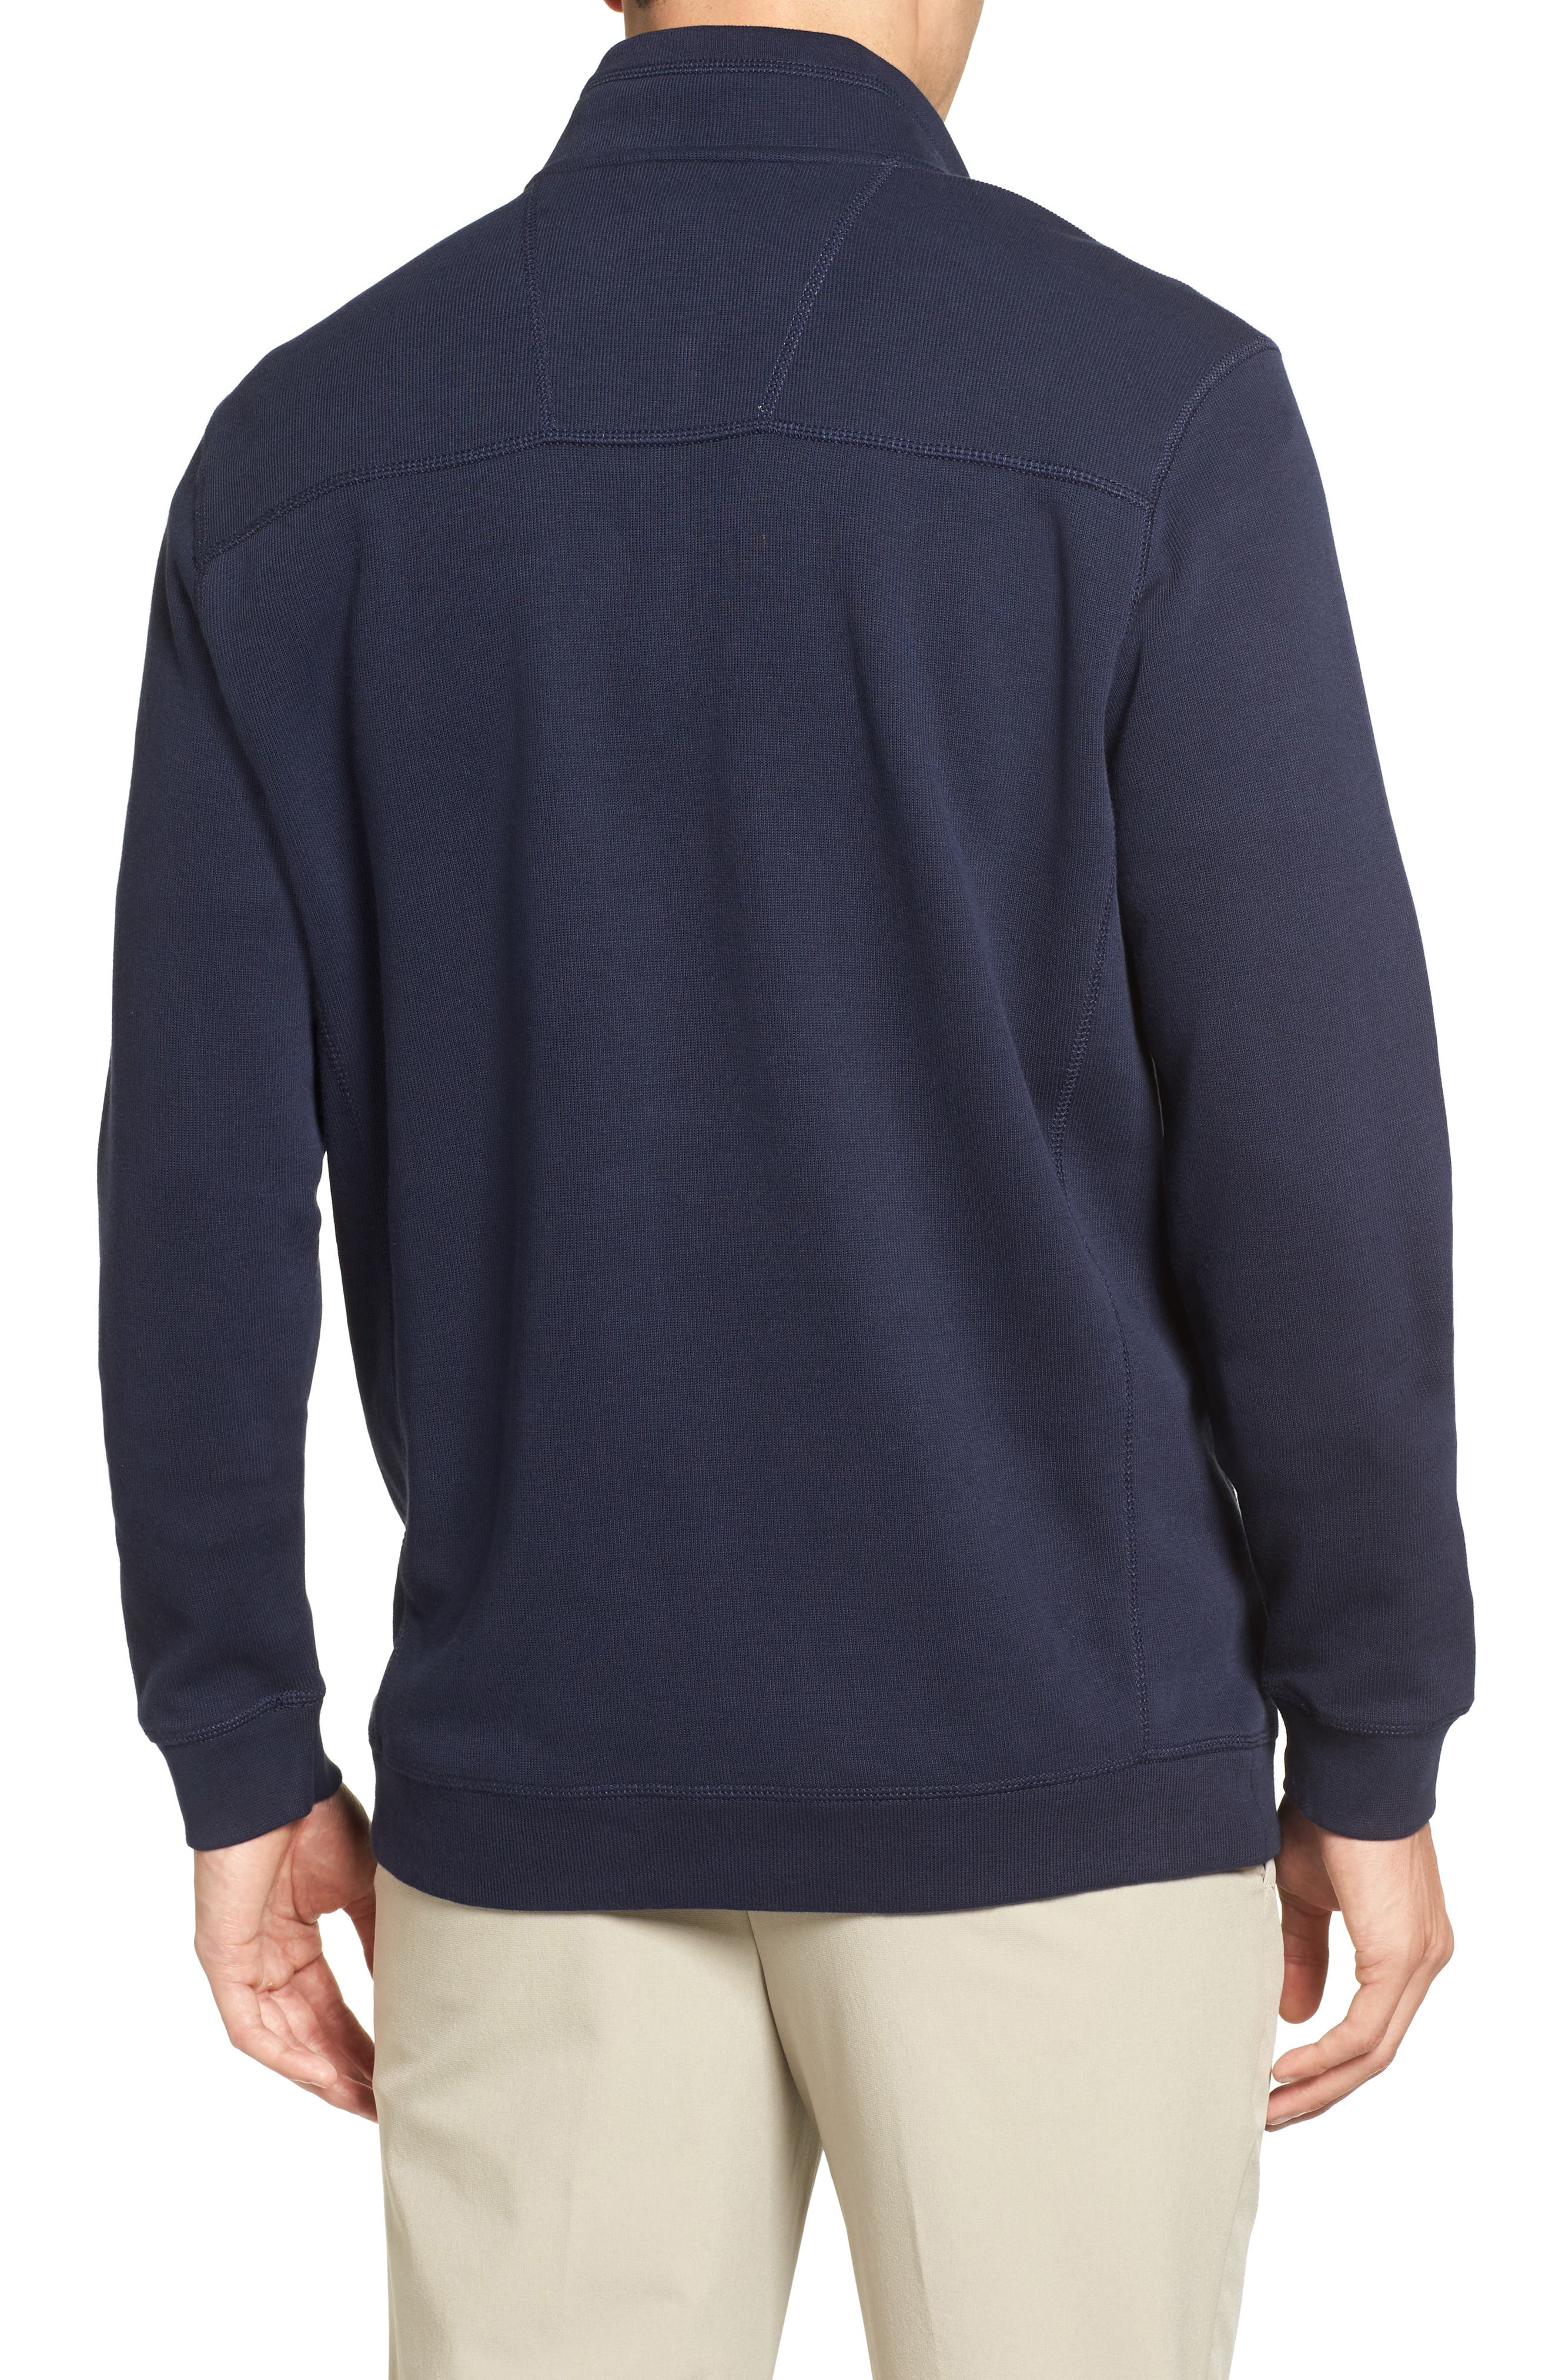 Bayview Quarter Zip Pullover,                             Alternate thumbnail 2, color,                             Liberty Navy